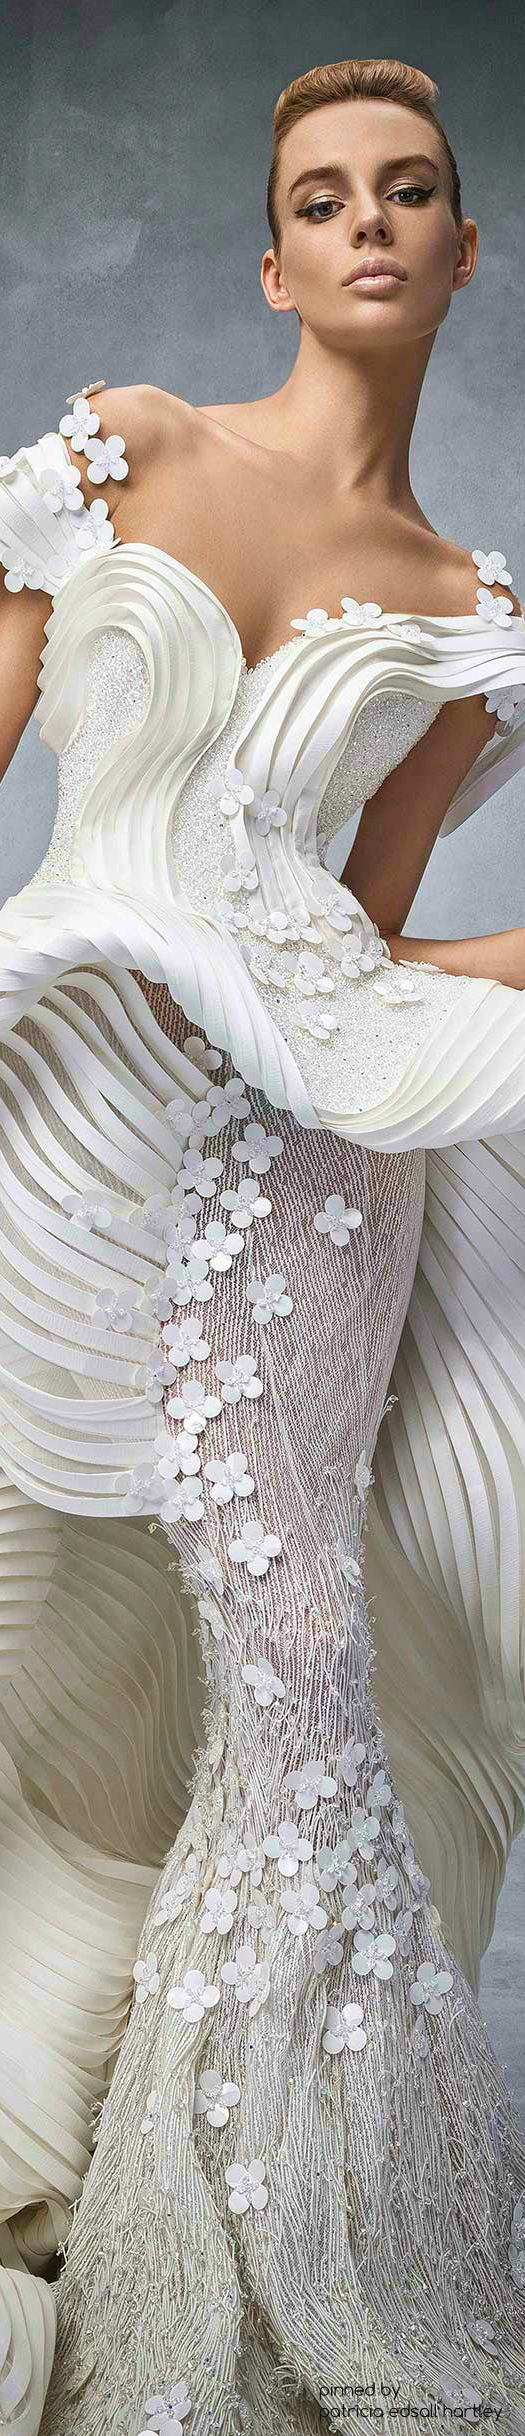 Sparkling Couture' from South East Asia -Ziad Antoun